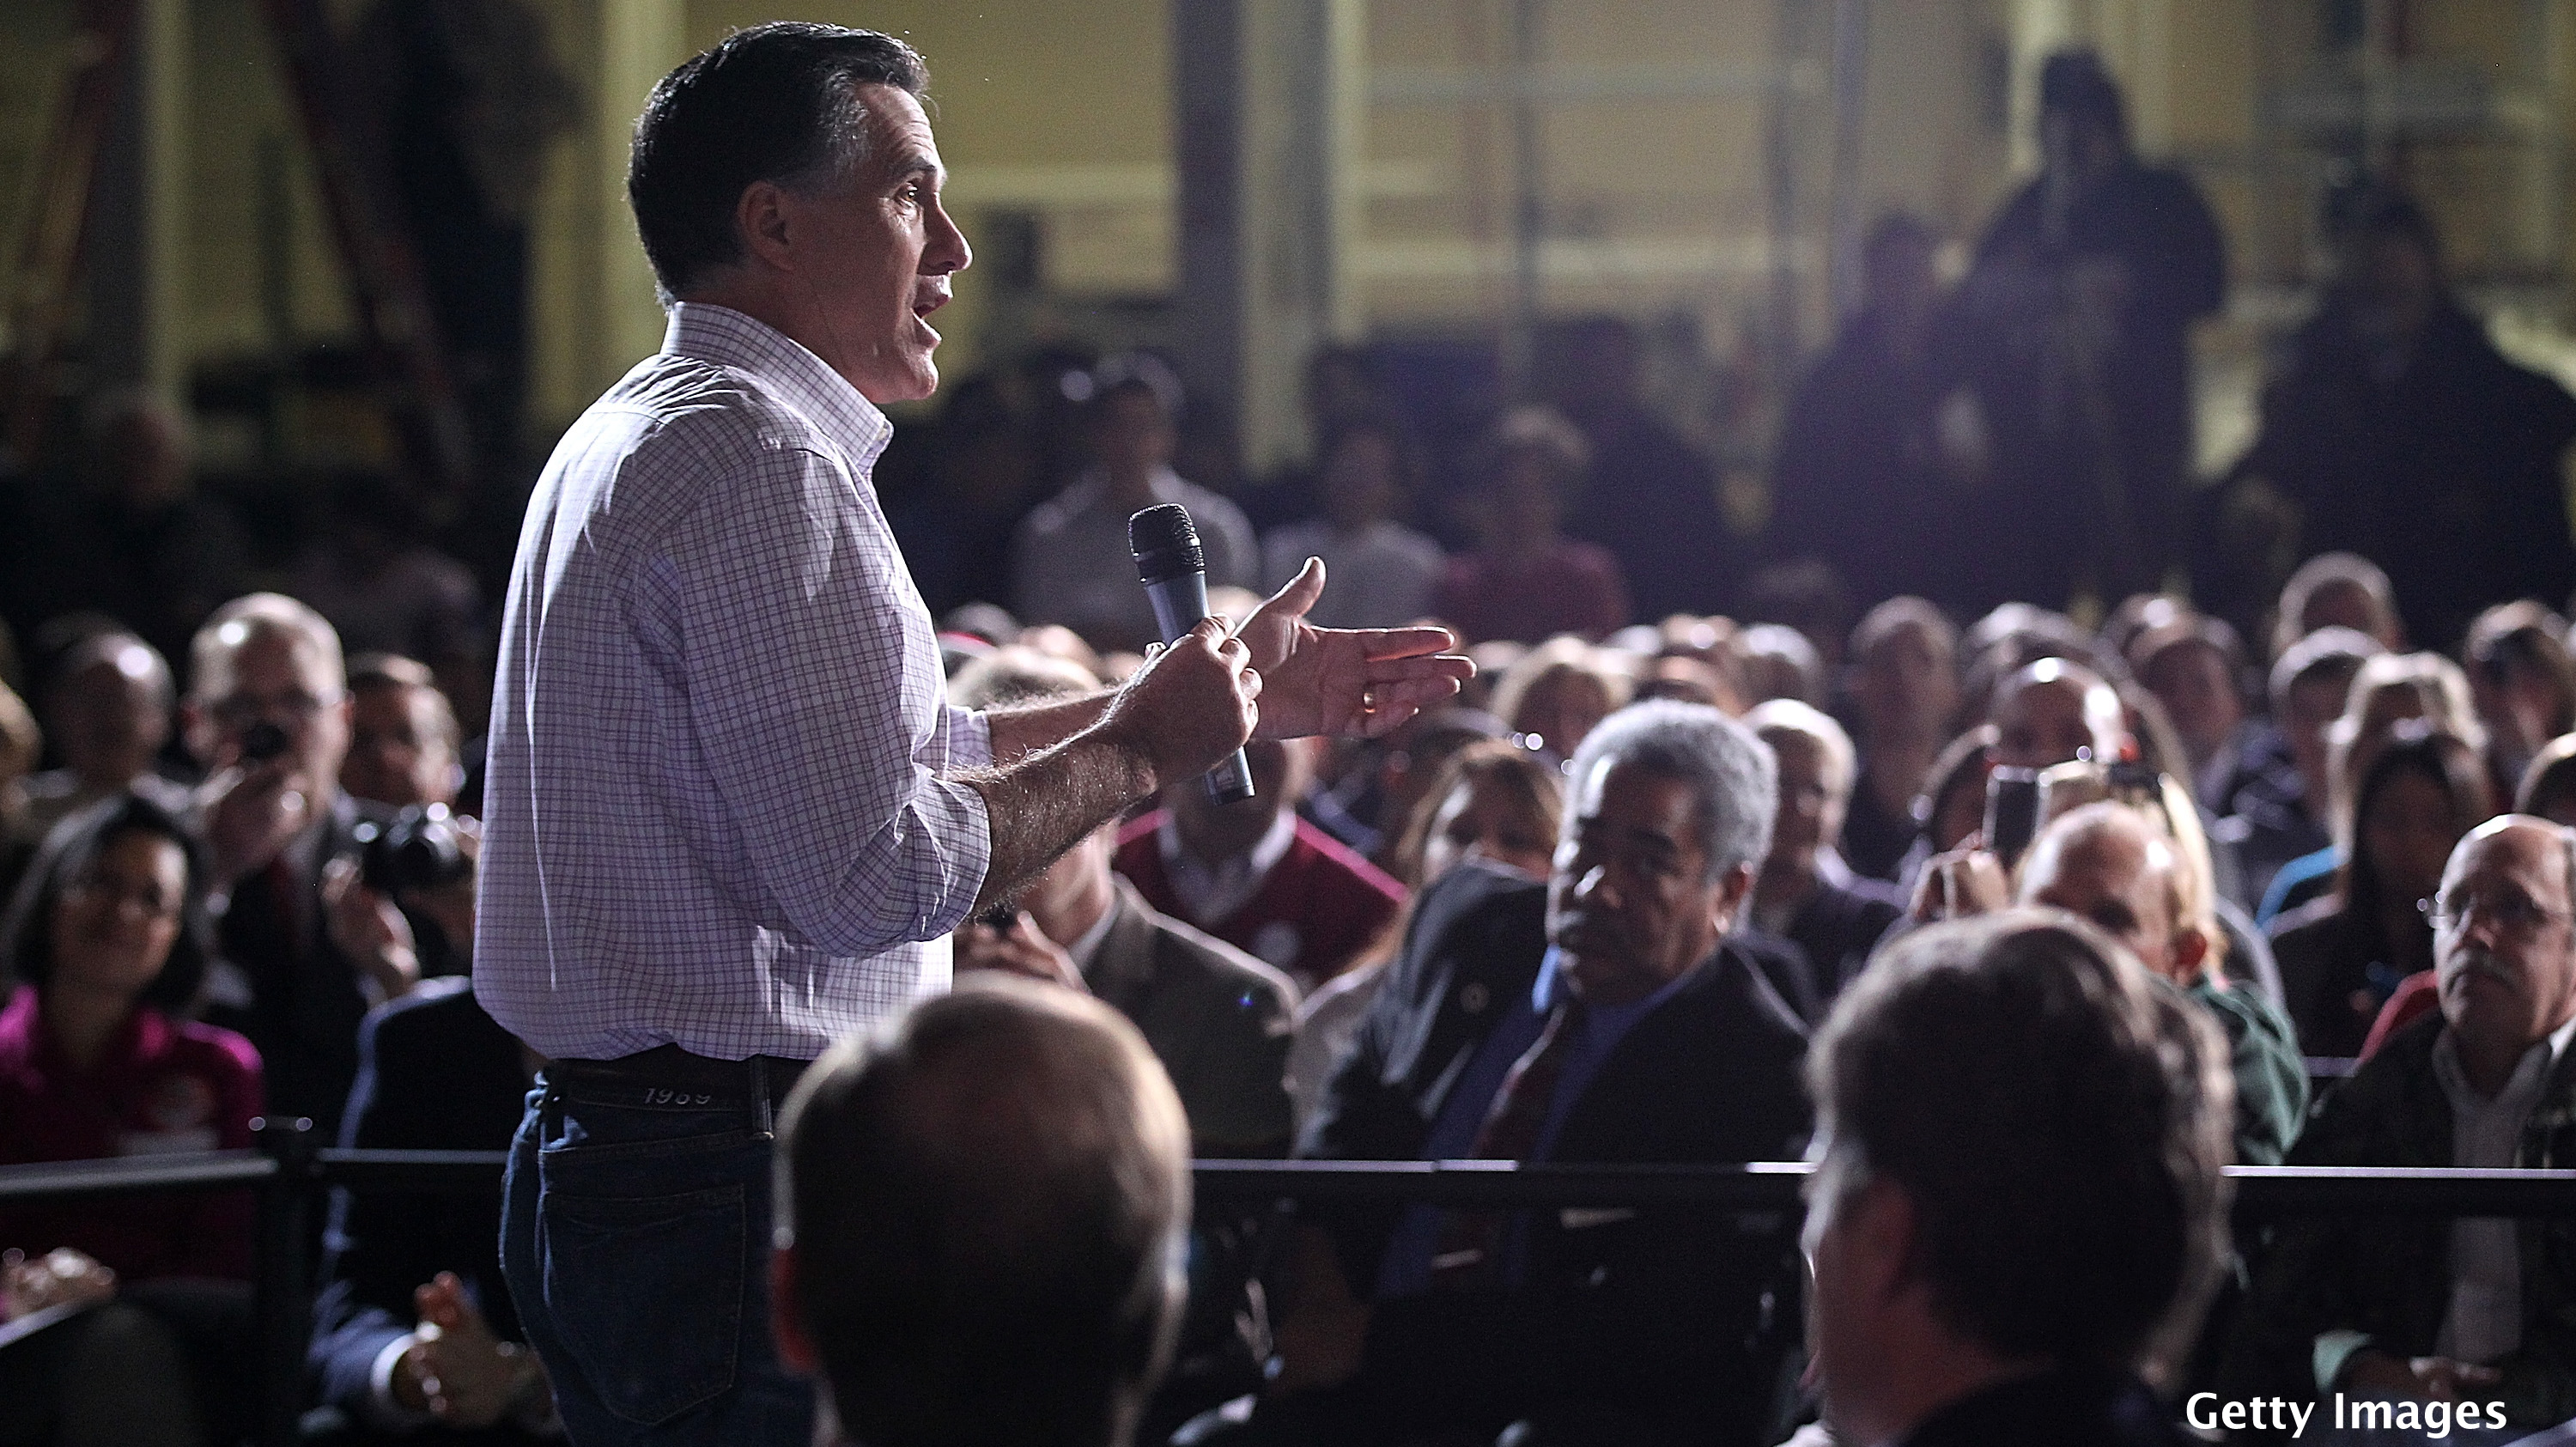 Romney makes general election pitch in Pennsylvania, but can't ignore Santorum